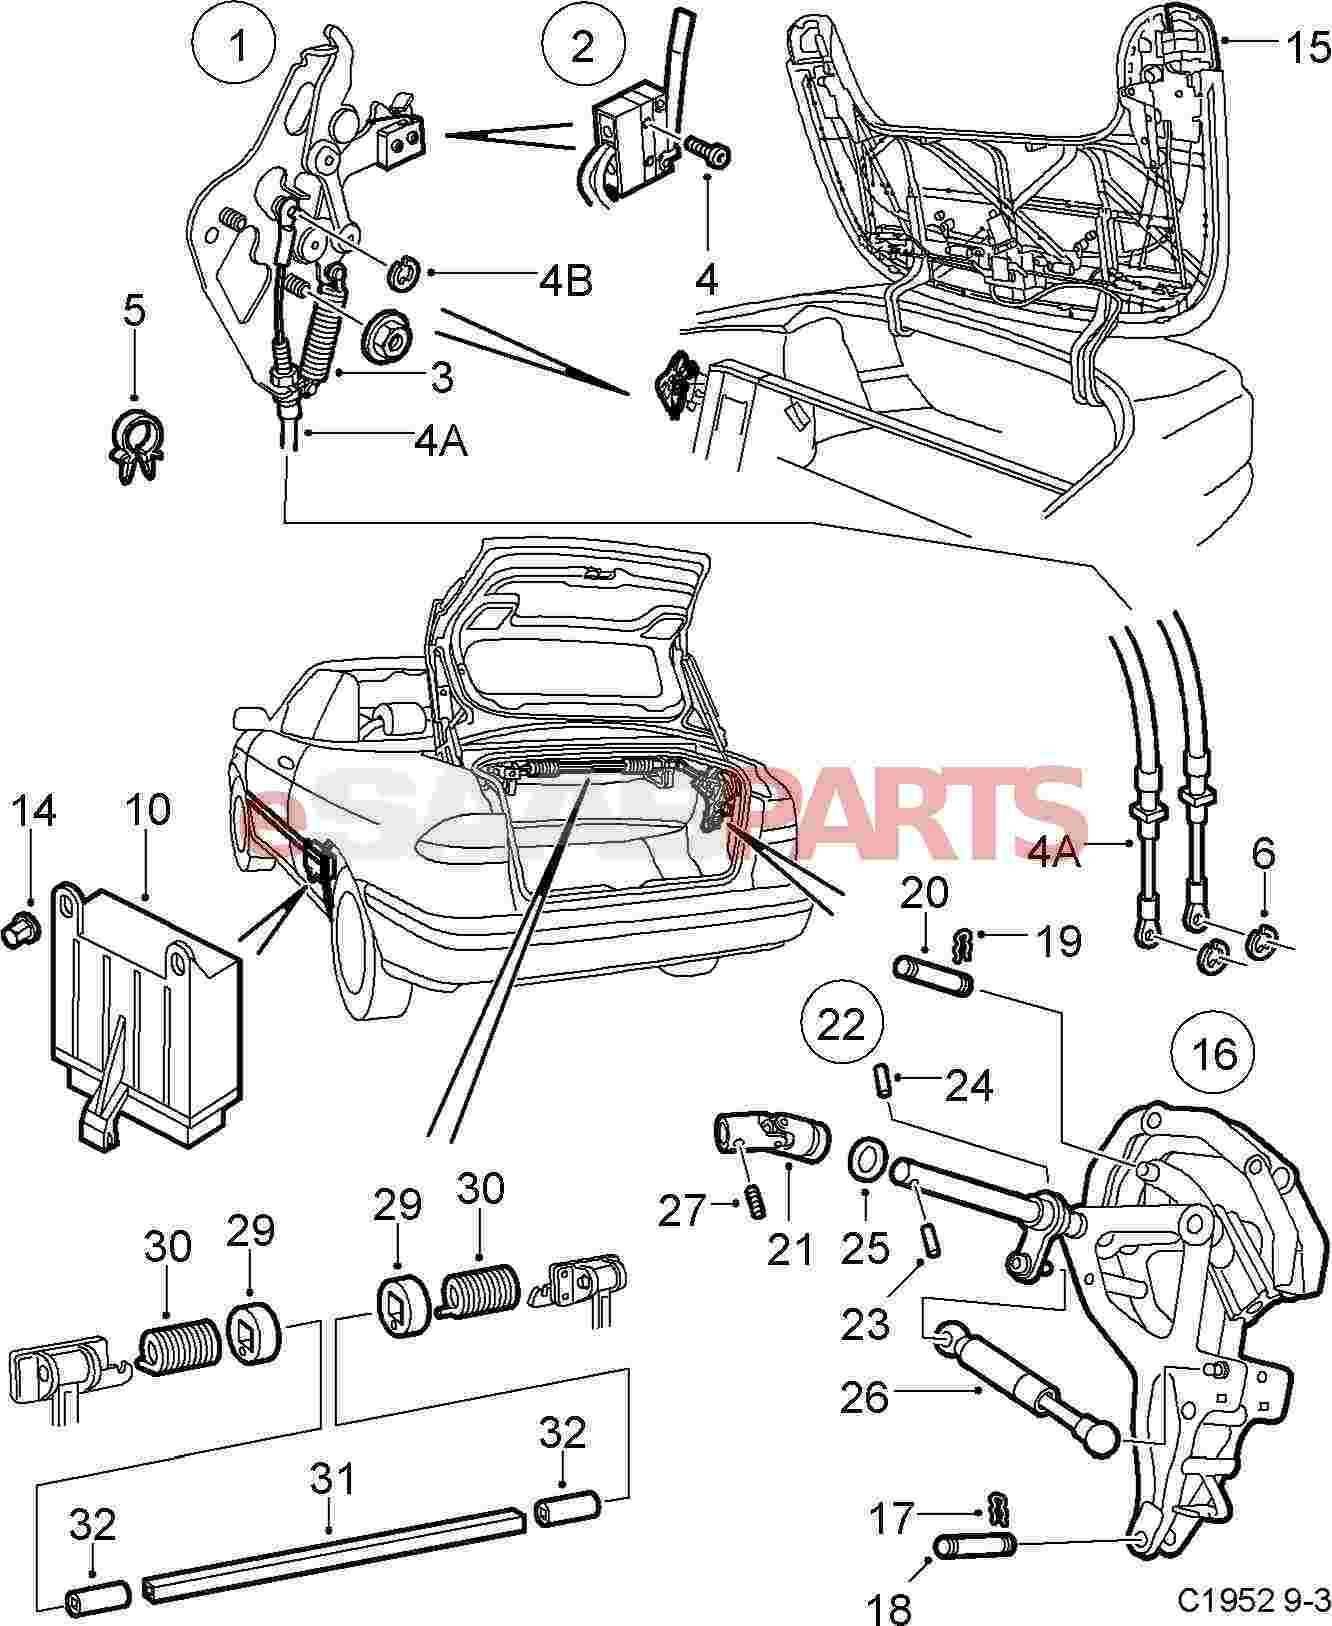 5184403 saab microswitch genuine saab parts from esaabparts com rh esaabparts com saab 900 parts diagram saab parts diagram online